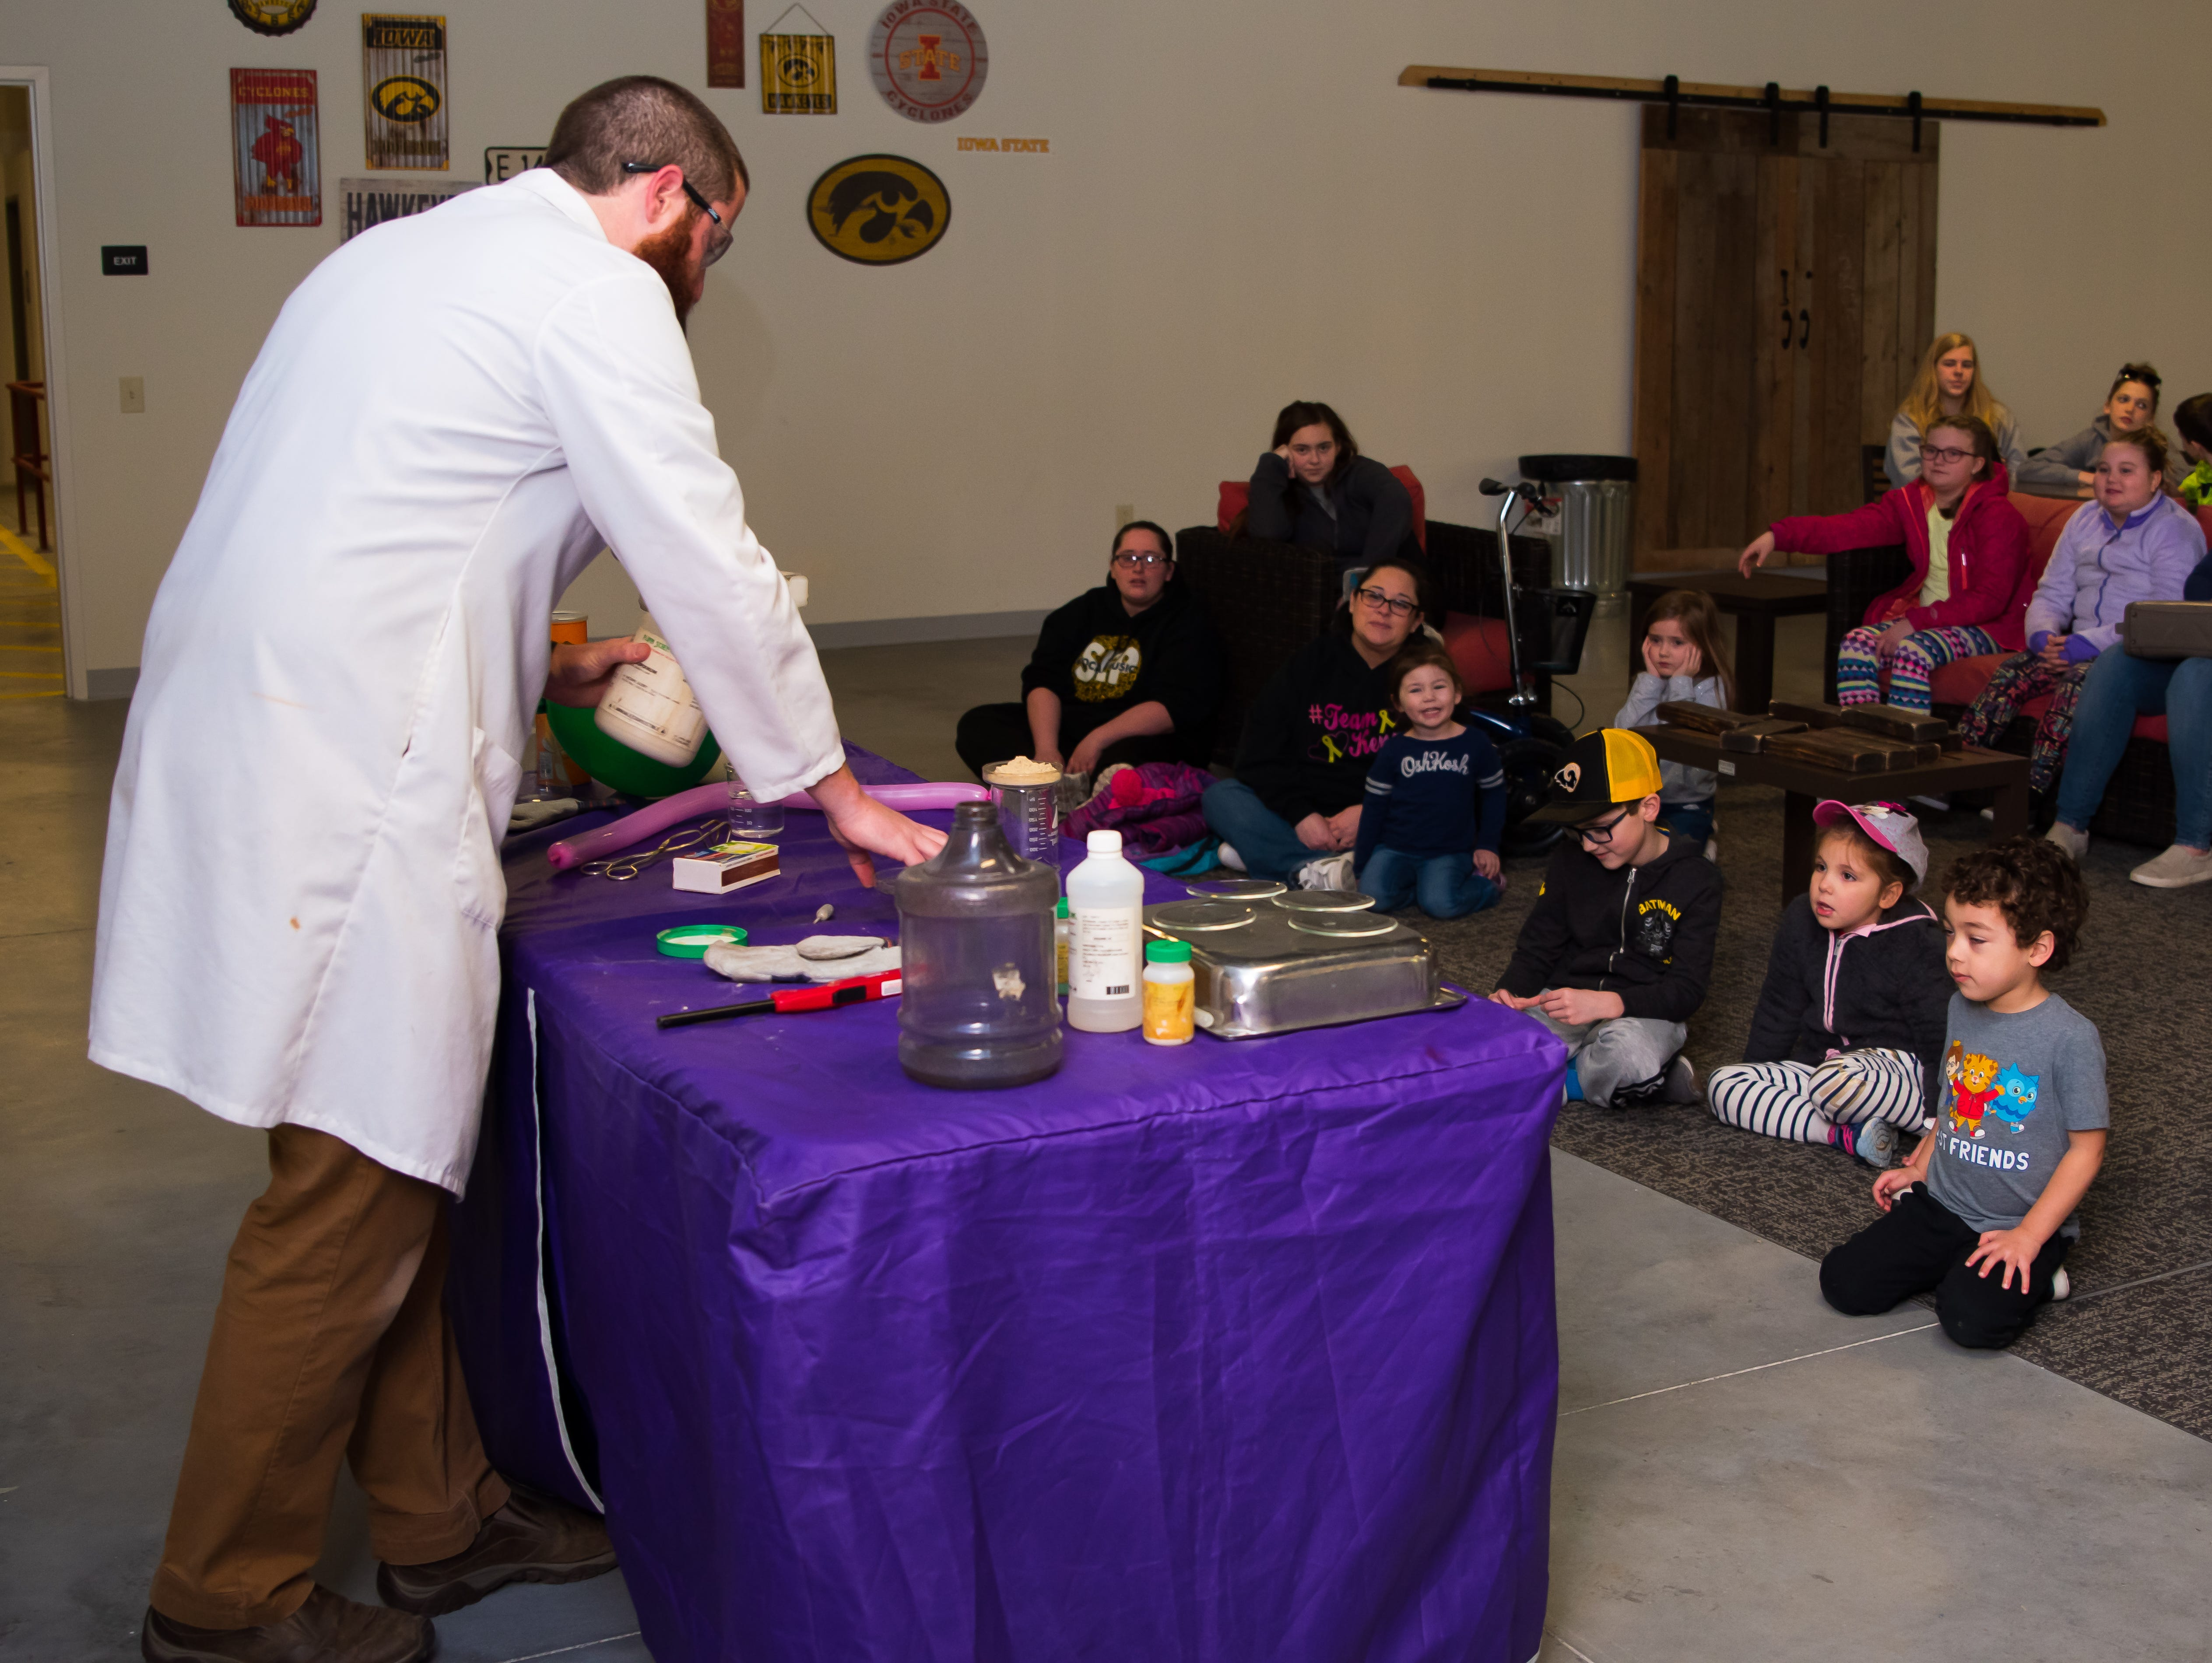 Science Center outreach coordinator Mark Runkel demonstrates an experiment Wednesday, March 20, 2019, during a Science Center program at the Outlets of Des Moines in Altoona.